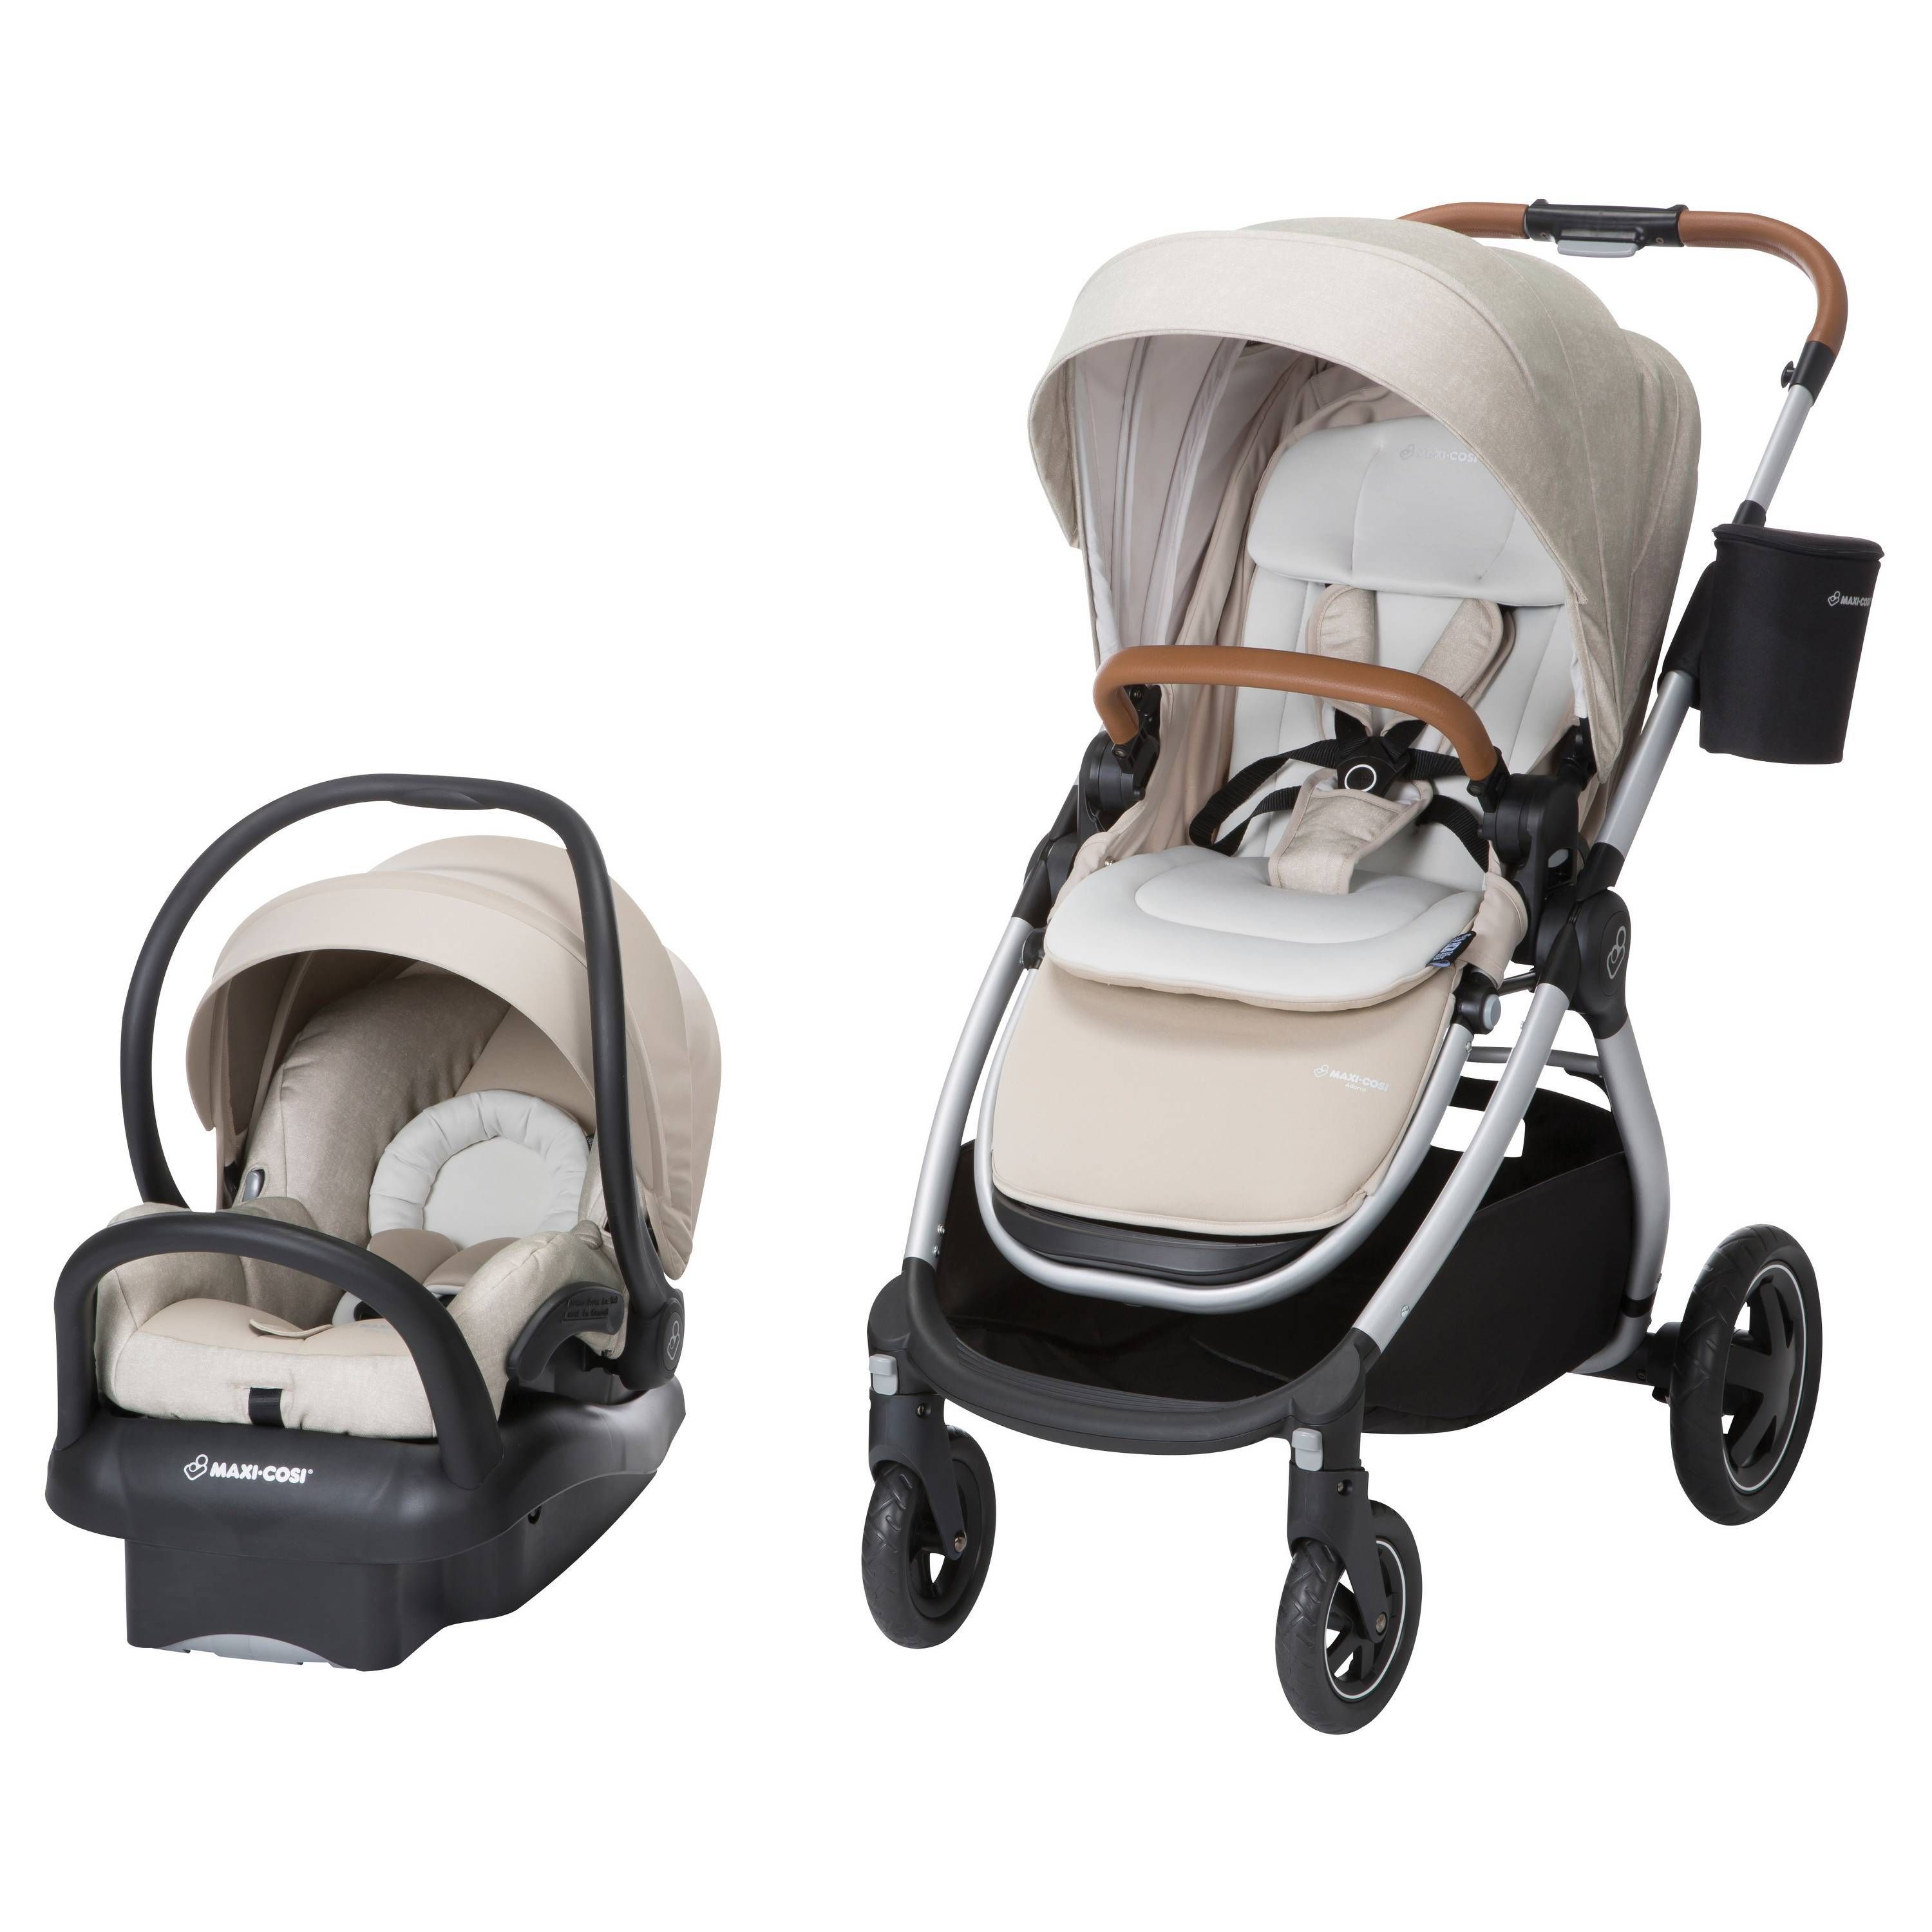 Lalo The Daily with Newborn Kit, Moon Stroller, Stroller